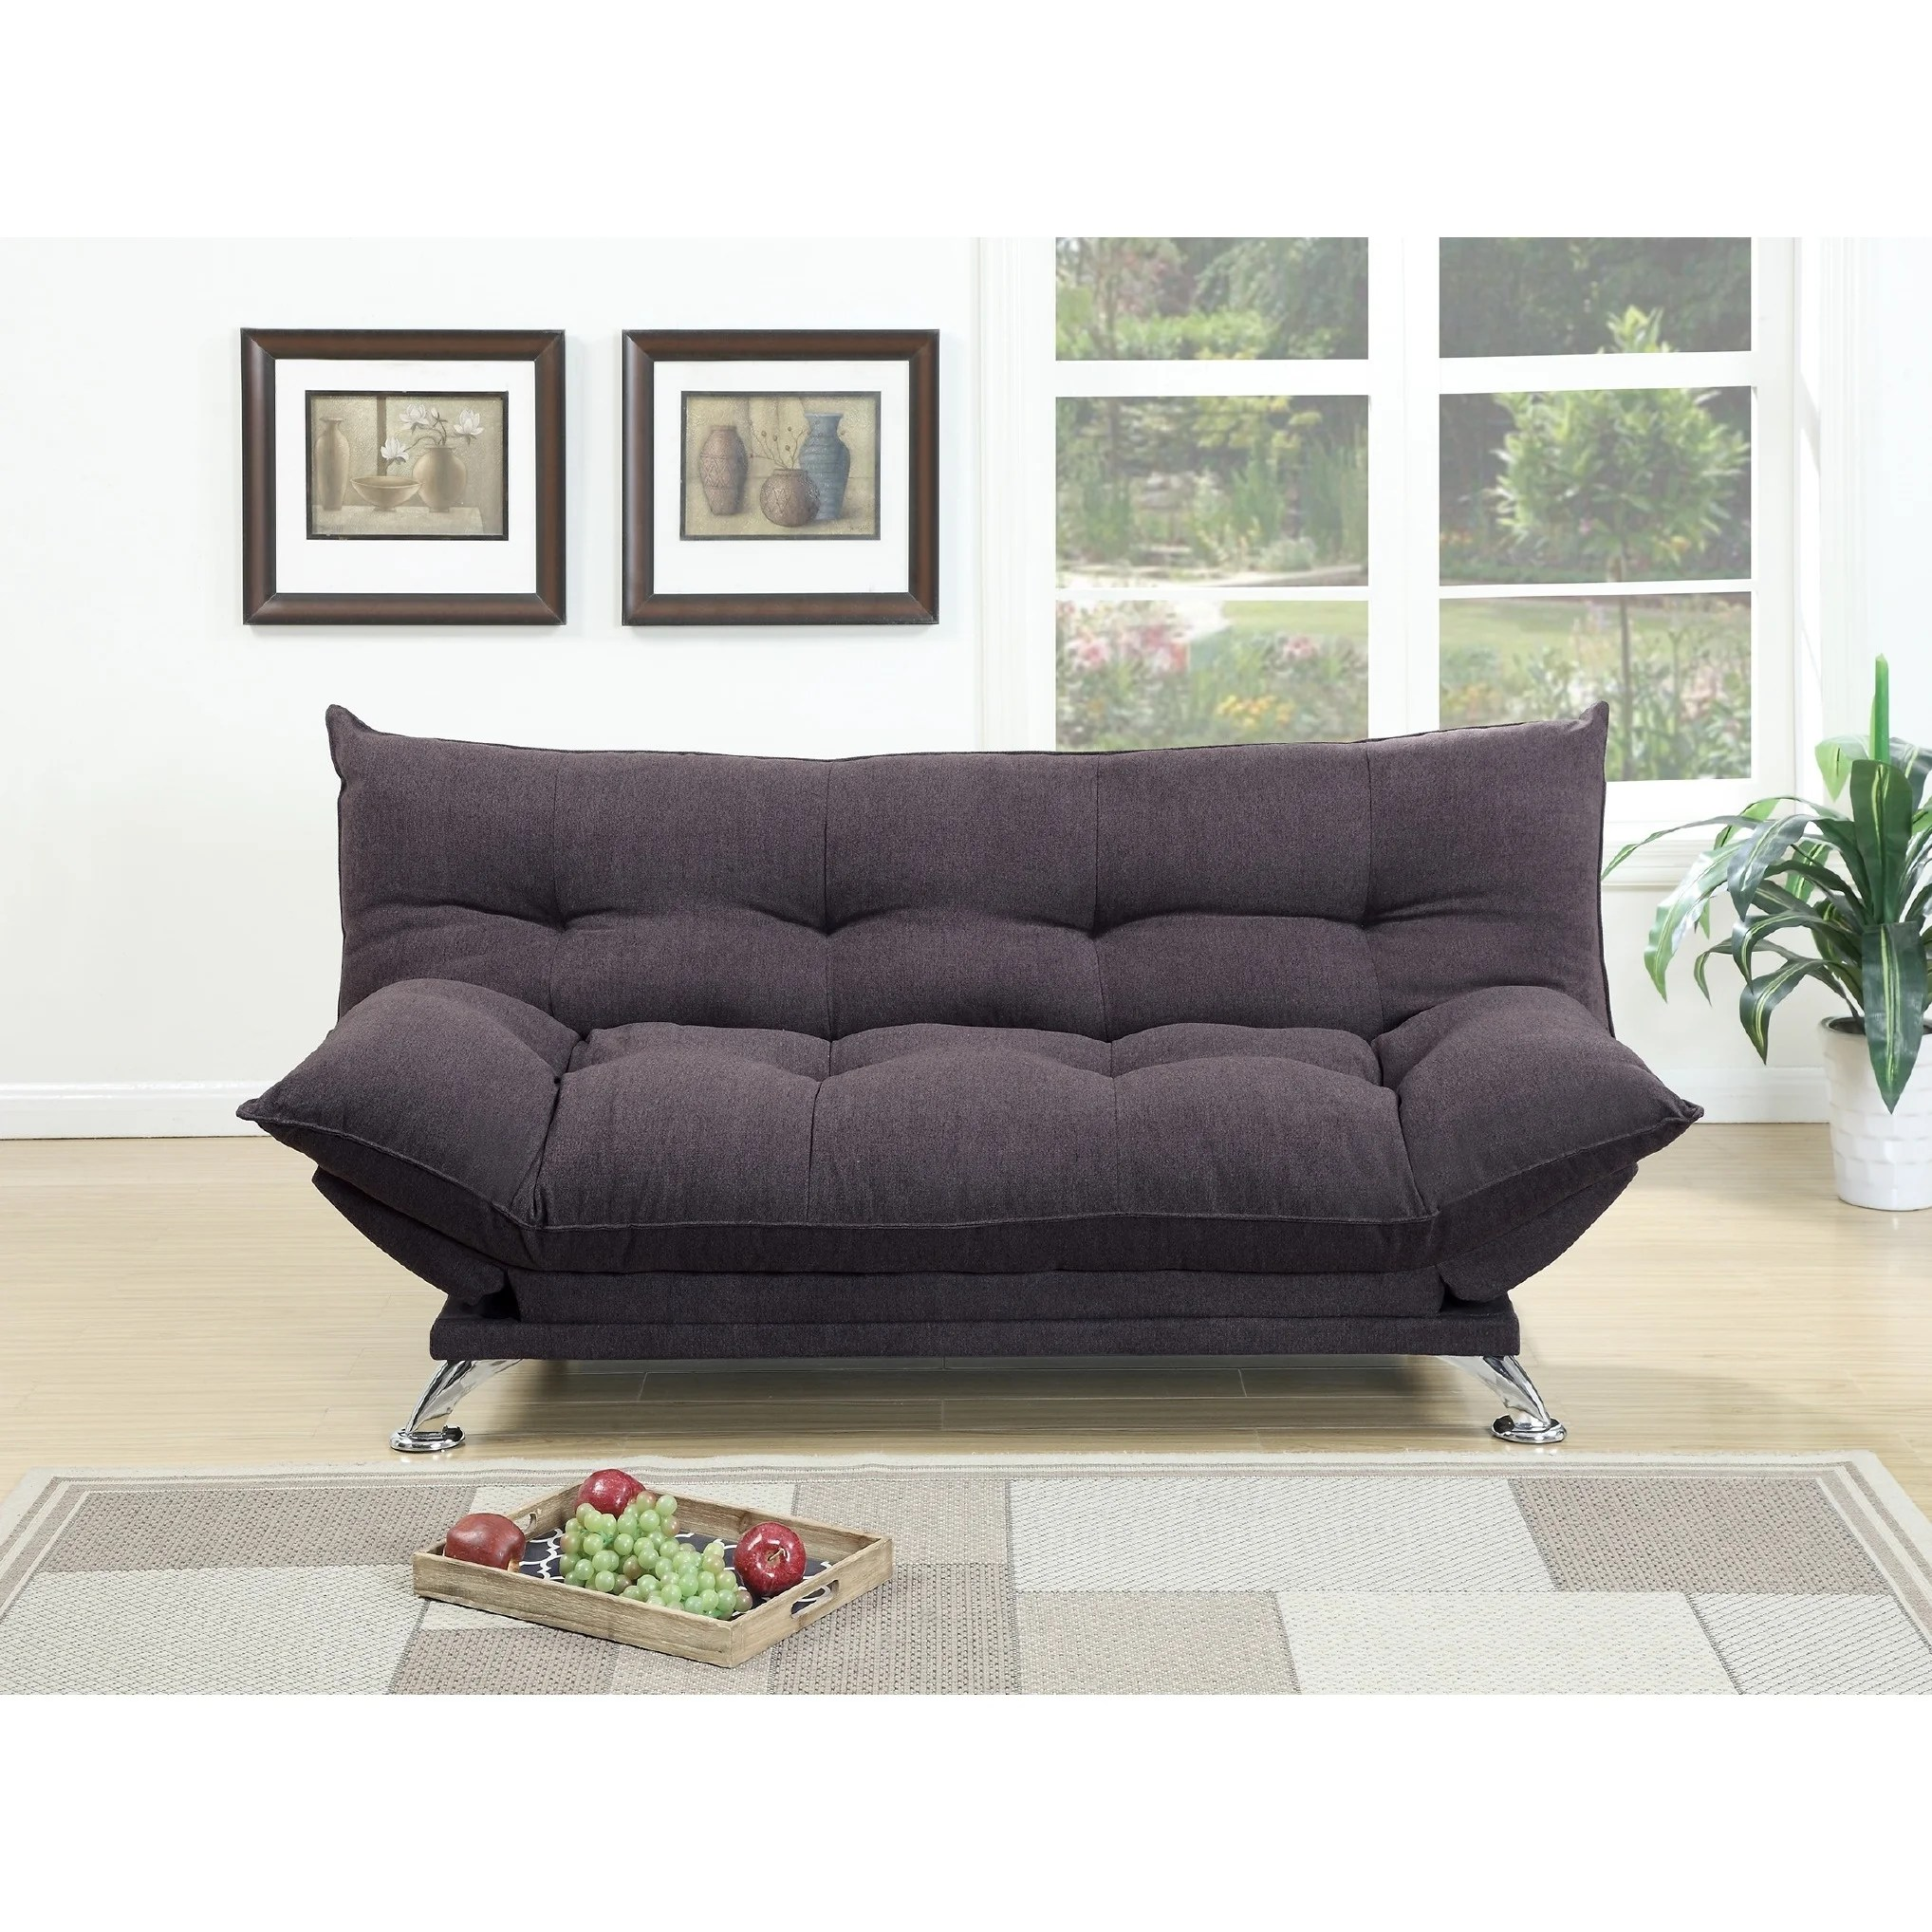 Couches Sleeper Rio Polyfiber Plush Sleeper Sofa